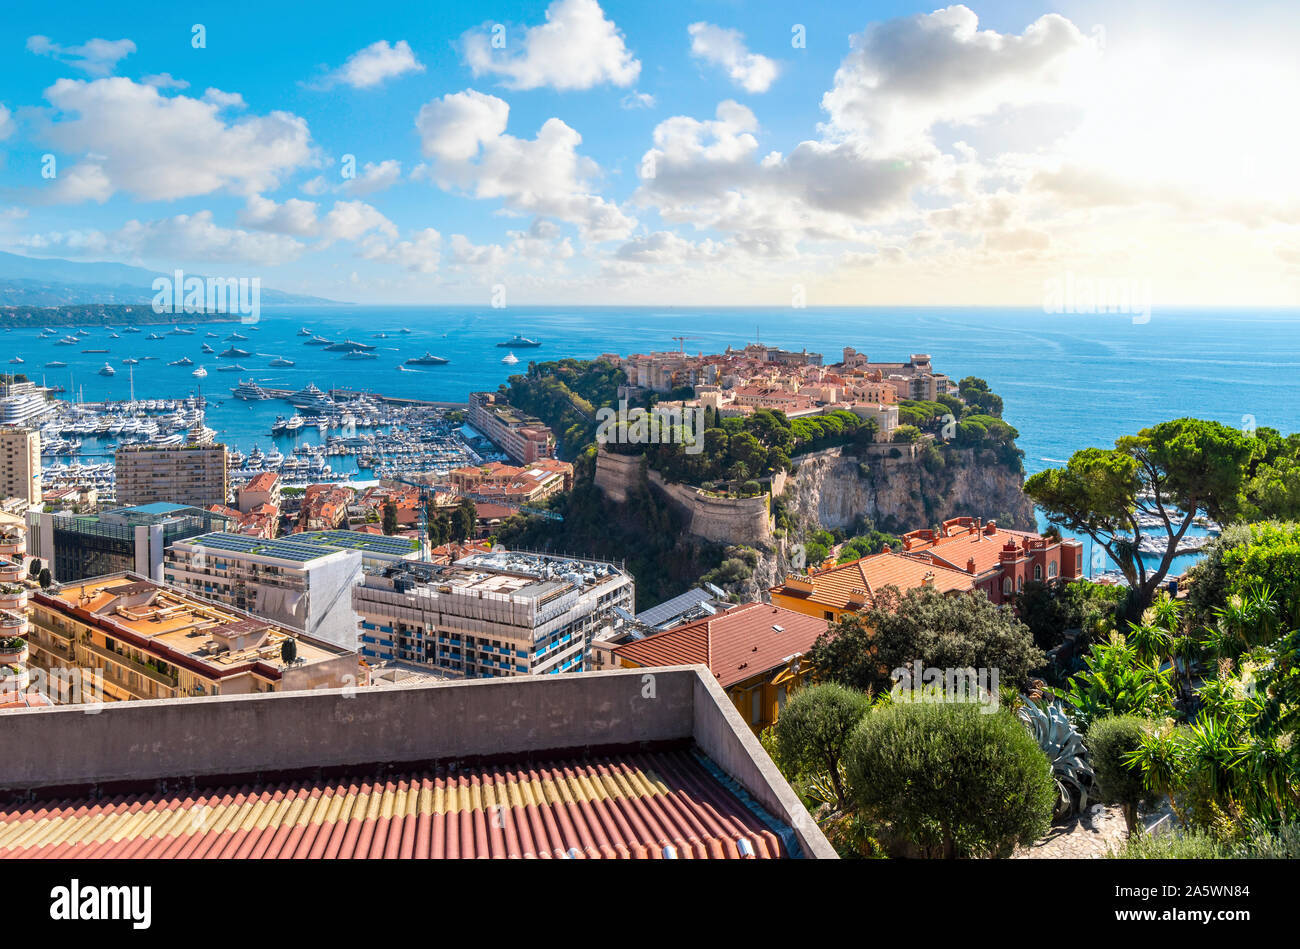 View of the Mediterranean Sea, and the marina, port, city and rock of Monte Carlo, Monaco, as the sun begins to set. Stock Photo